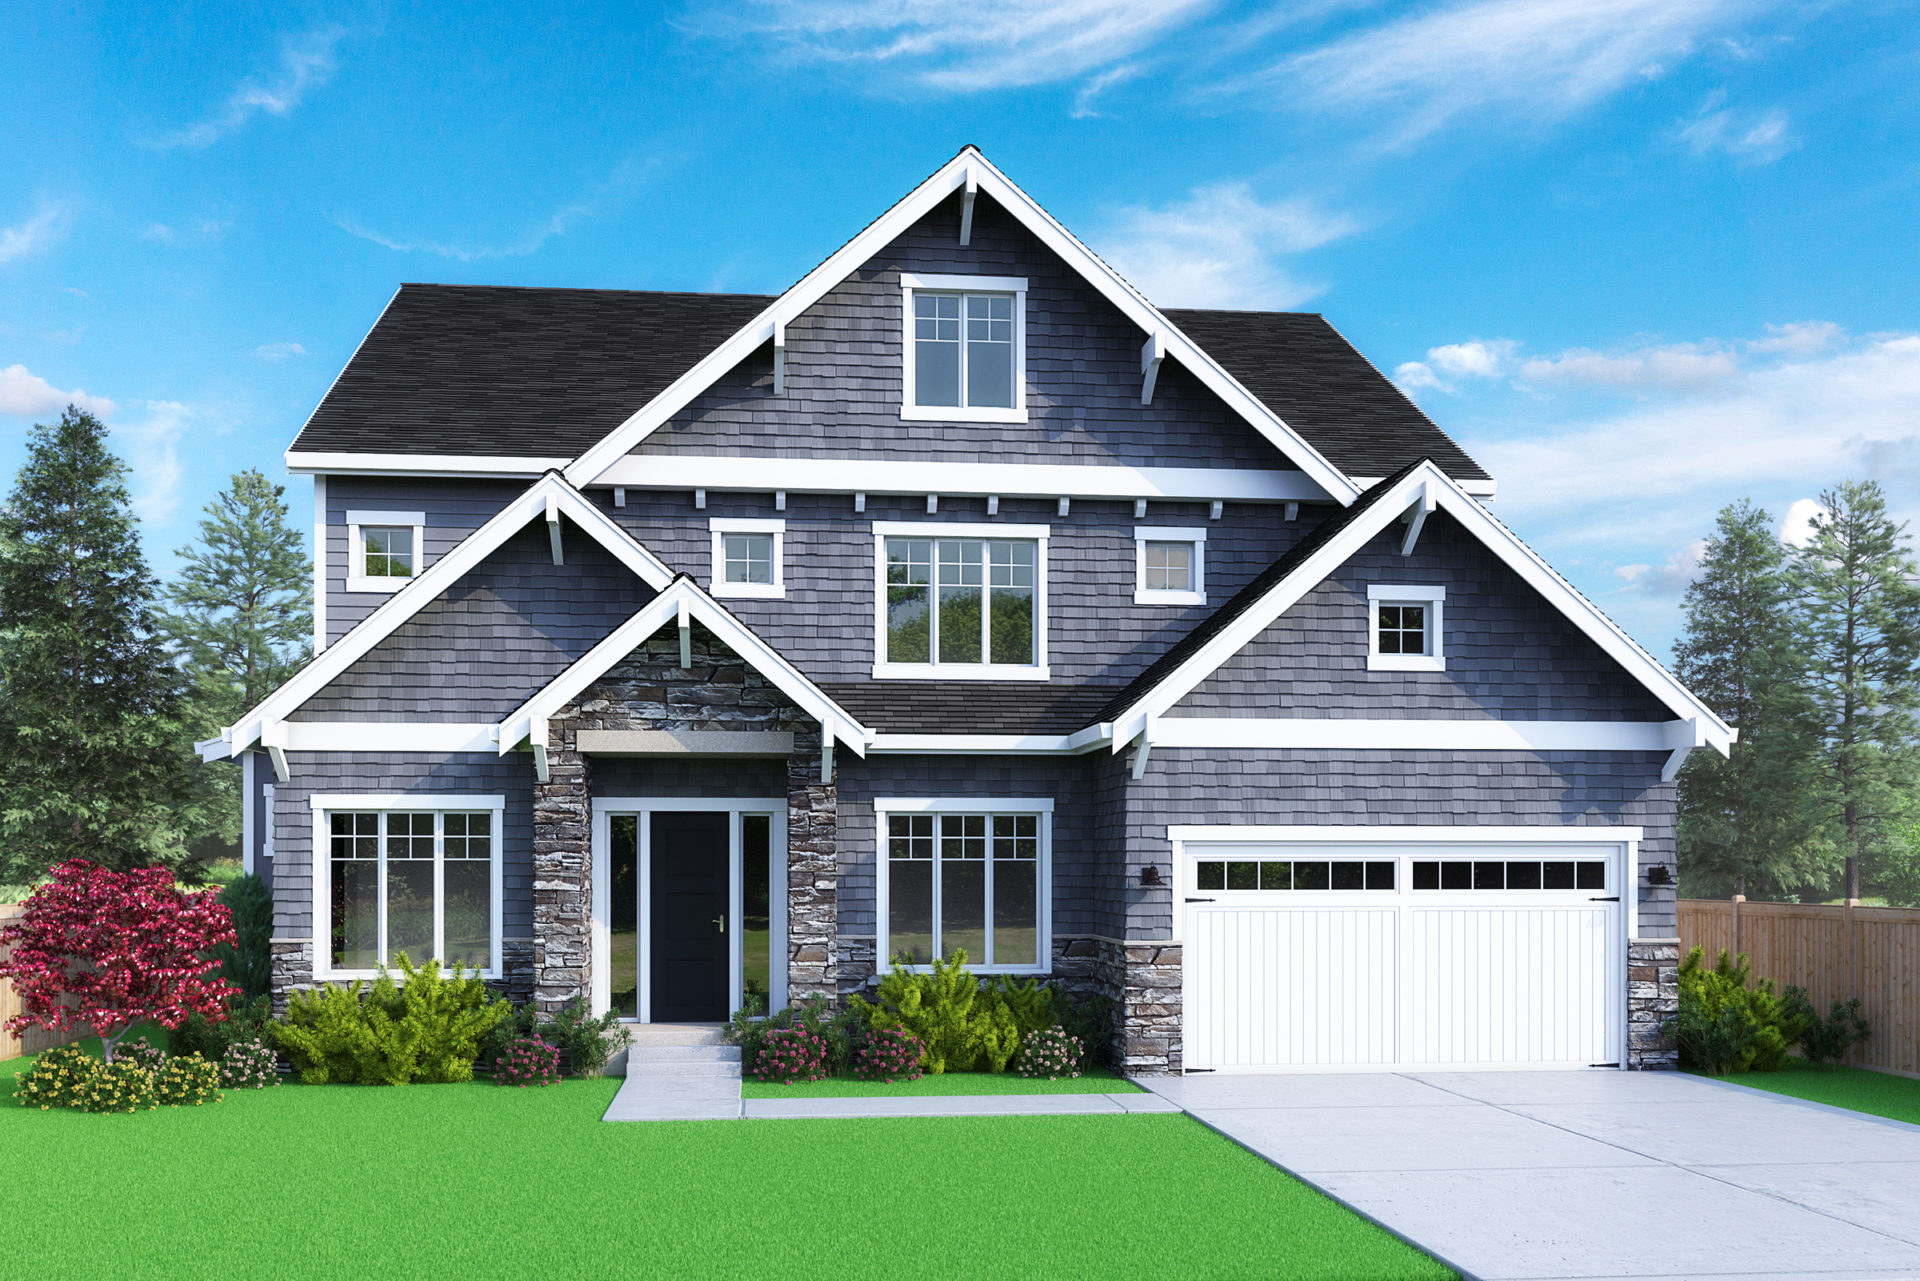 View our new luxury home construction on 538 128th Ave SE, in Bellevue, WA from MN Custom Homes